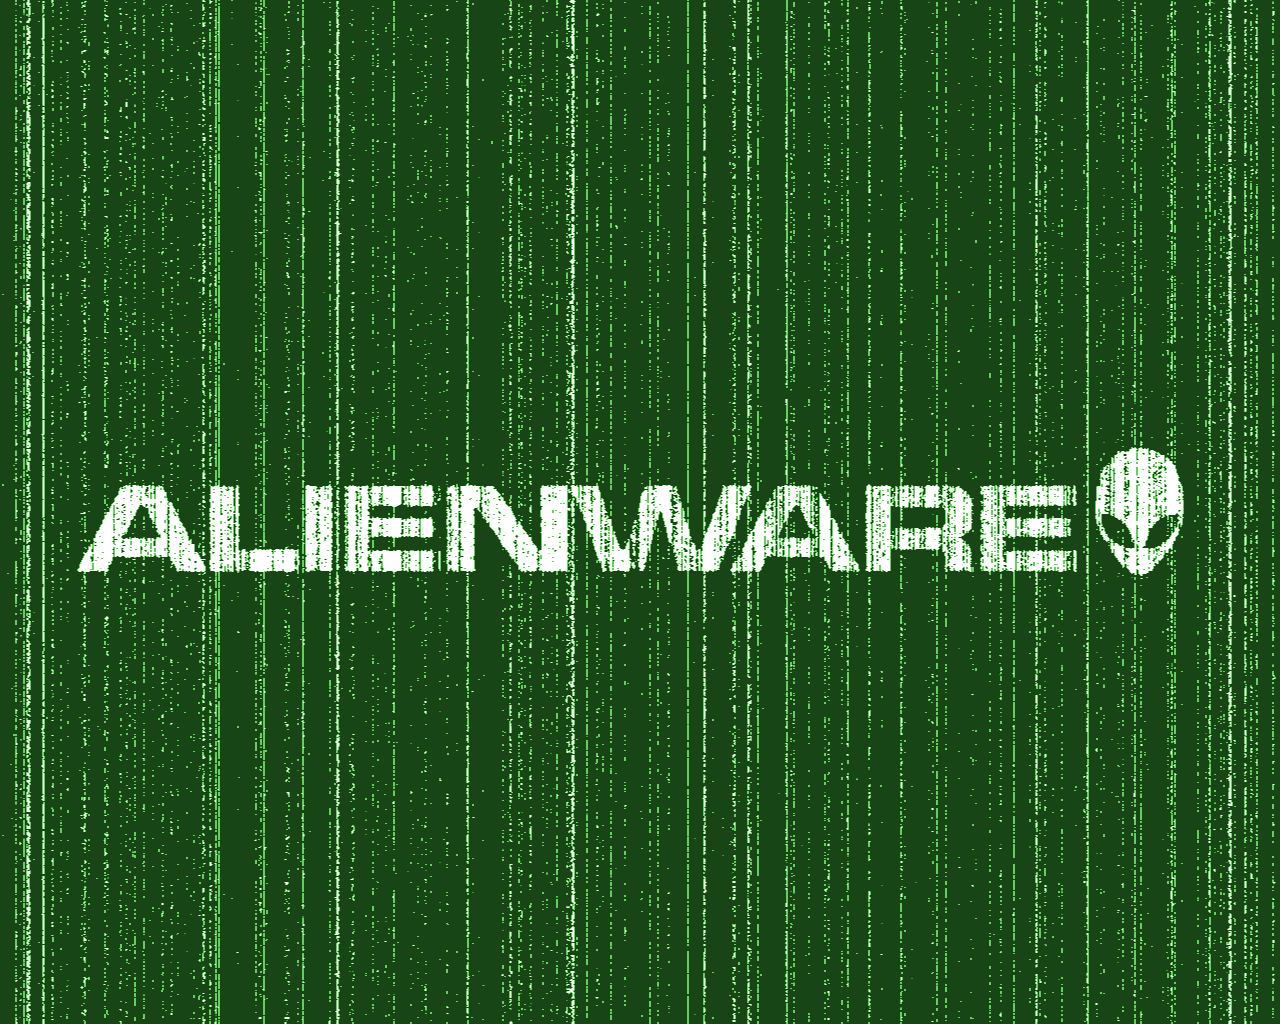 Funny Alien Wallpaper moreover Sci Fi Alien Wallpaper X together with  likewise Uhq P likewise Alien Vs Predator Human X Wallpaper. on alien wallpaper hd desktop